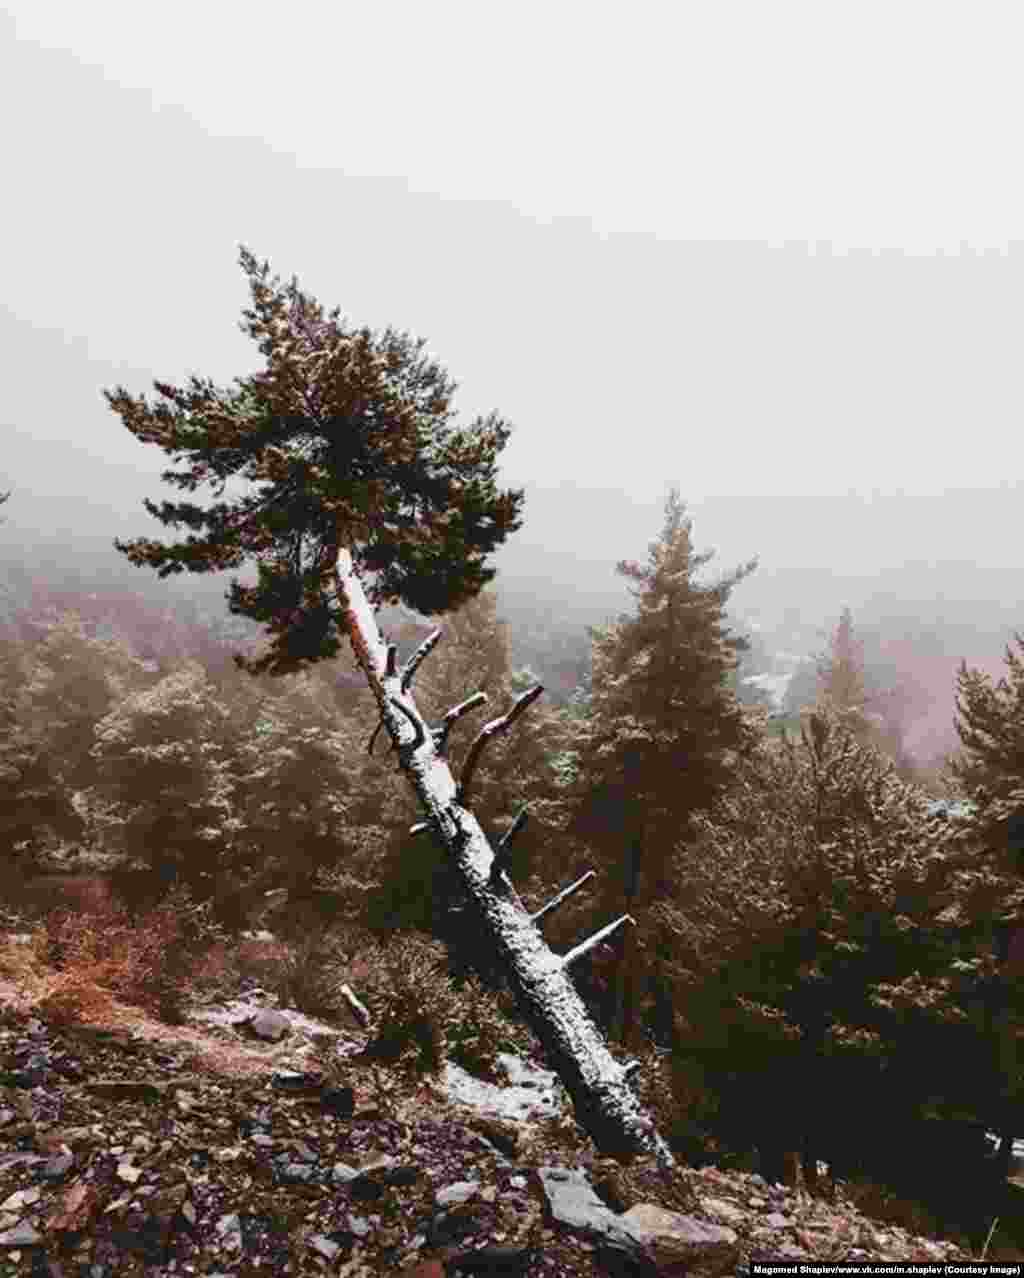 "A pine under a dusting of fresh snow. Shapiev explains the origins of his love for capturing such scenes during a telephone call with RFE/RL. ""I grew up in the mountains,"" he says, ""and as a kid I used to go on little adventures and sketch what I saw."""